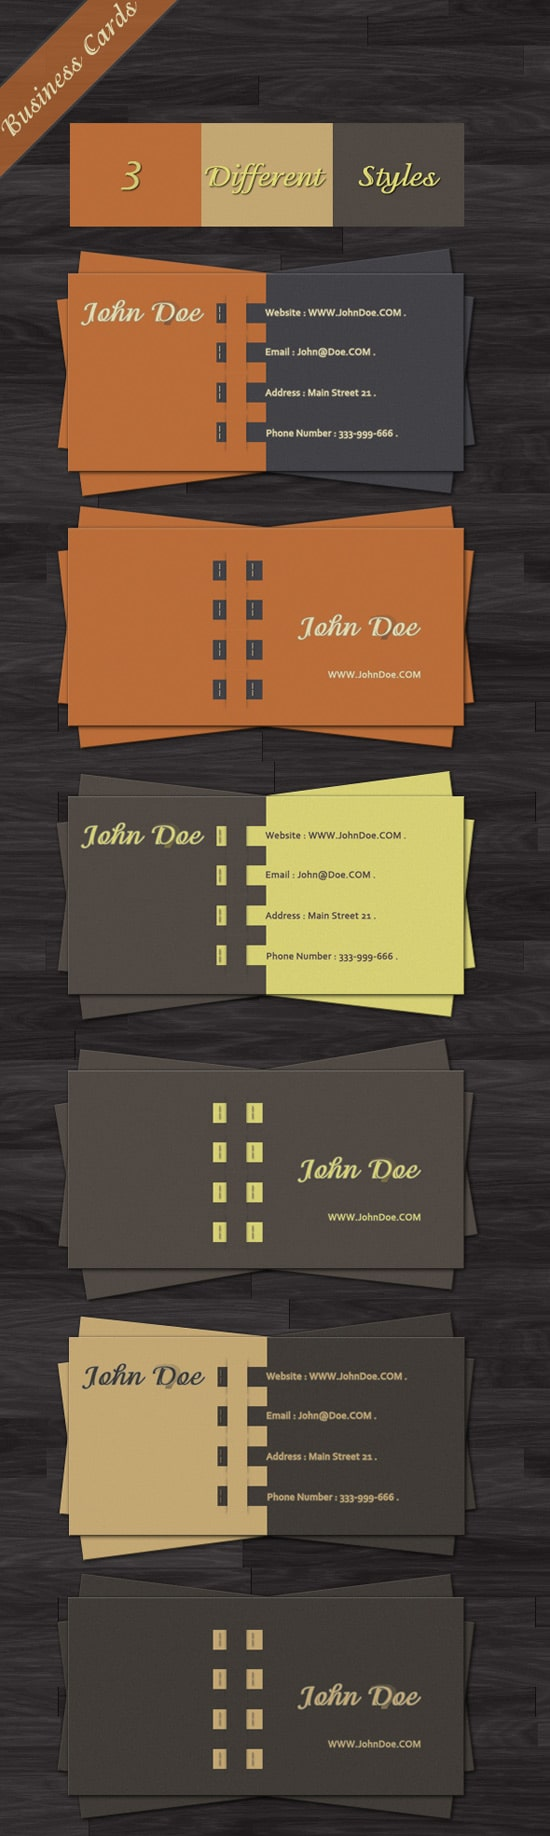 100 free business card templates designrfix business is business free psd vector business card reheart Gallery